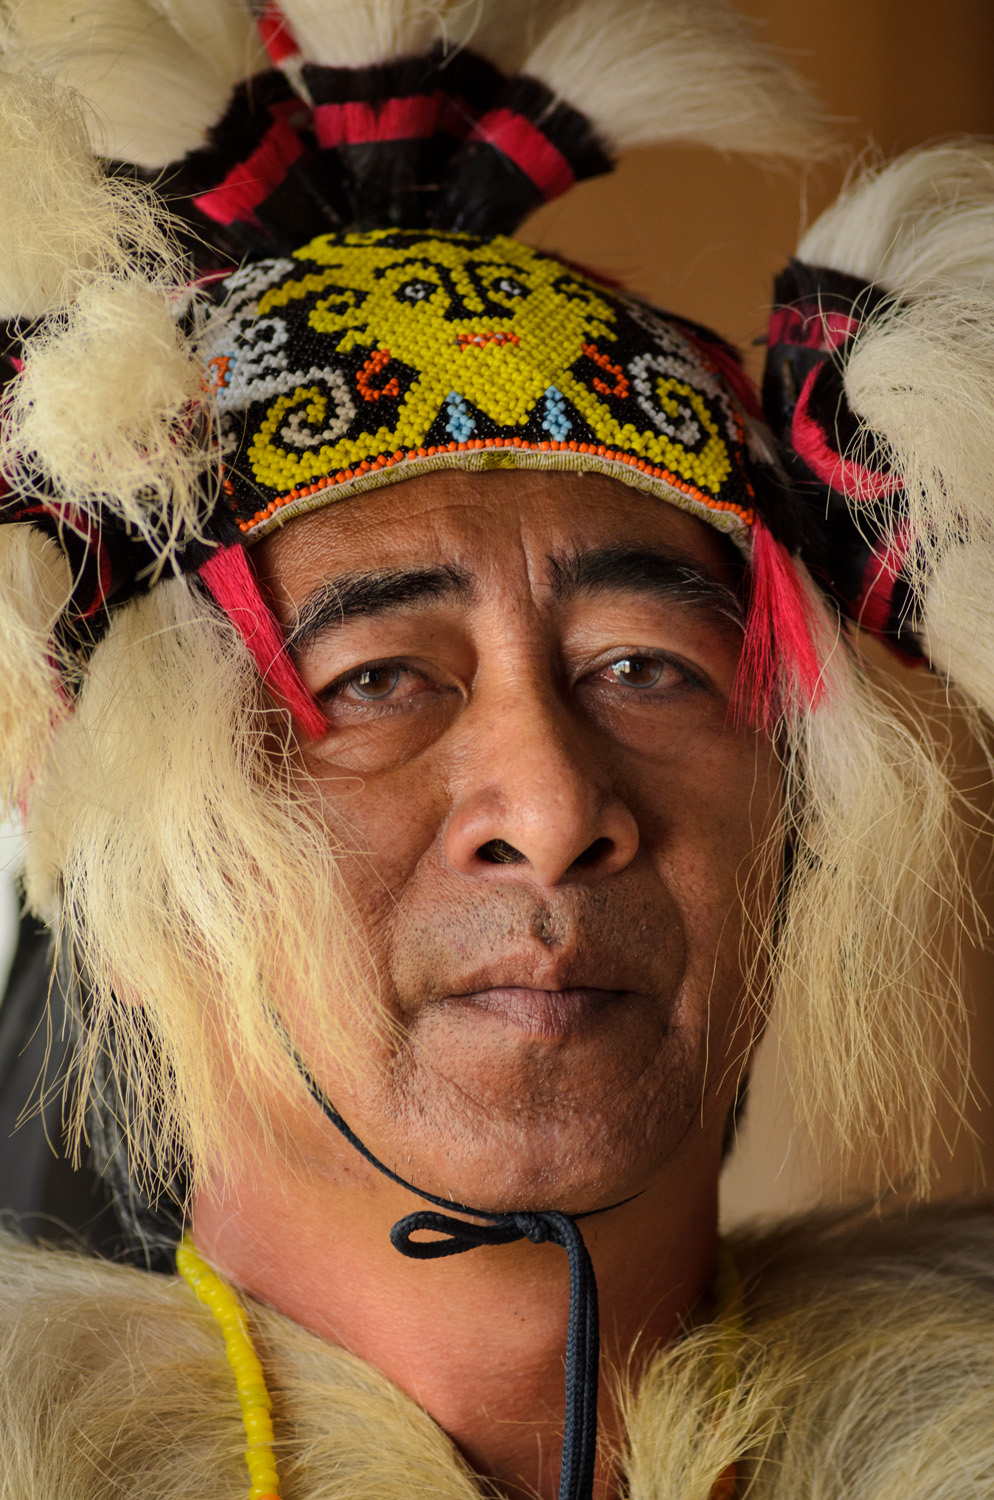 Portrait of Stephen Bala wearing his traditional Kelabit headdress in his home and guesthouse in Bario, Sarawak, Malaysia. Bala is a well-known regional artist who also works to preserve traditional Kelabit cultural traditions.